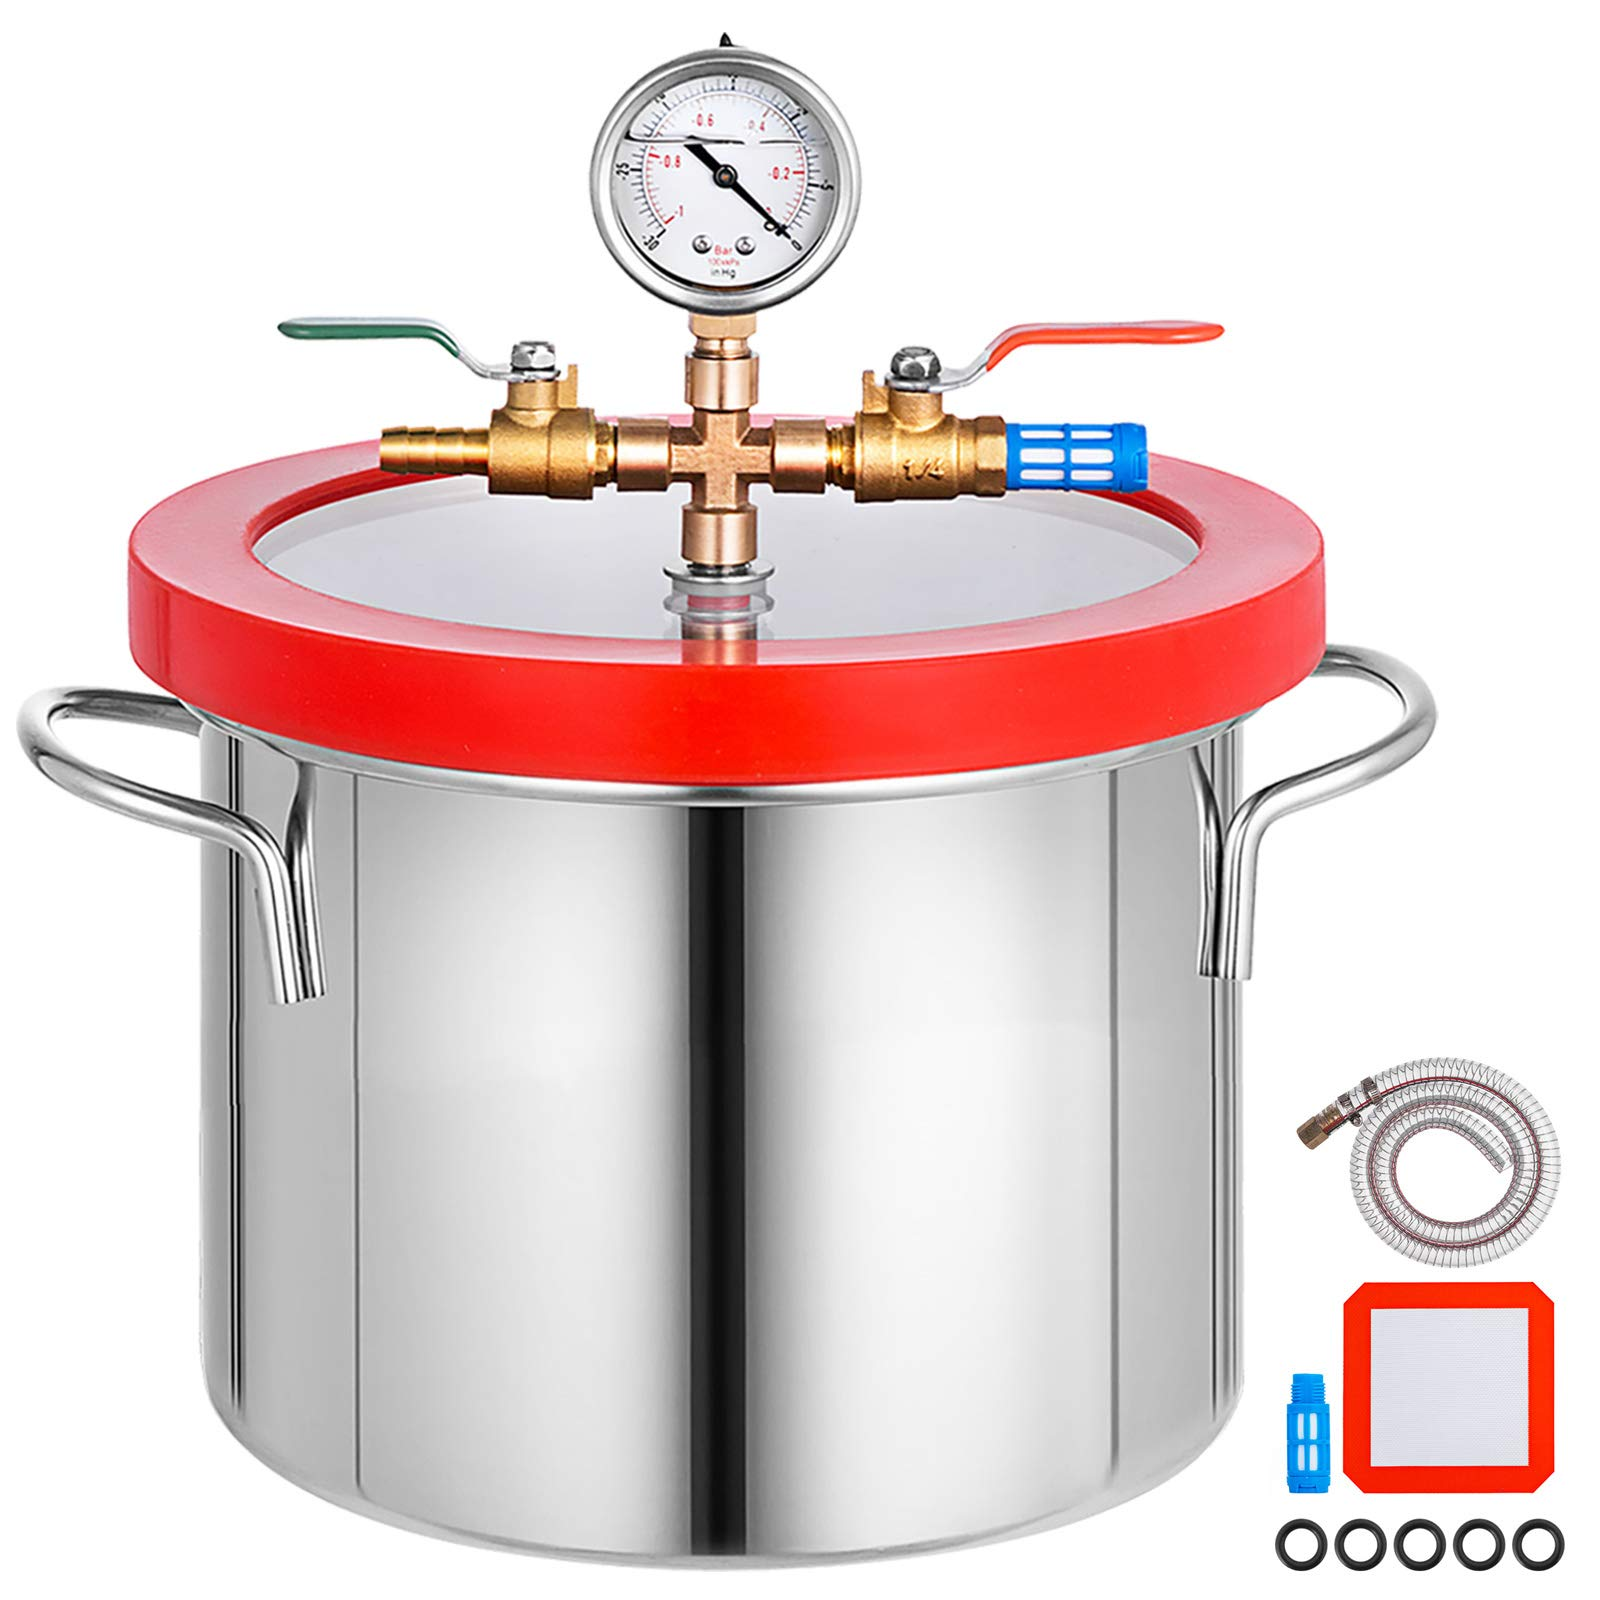 Bestauto Vacuum Chamber 1.5 Gallon Vacuum Degassing Chamber Glass Lid Stainless Steel Degassing Chamber Silicones for Gas Extraction and Protect Food by Best In Auto